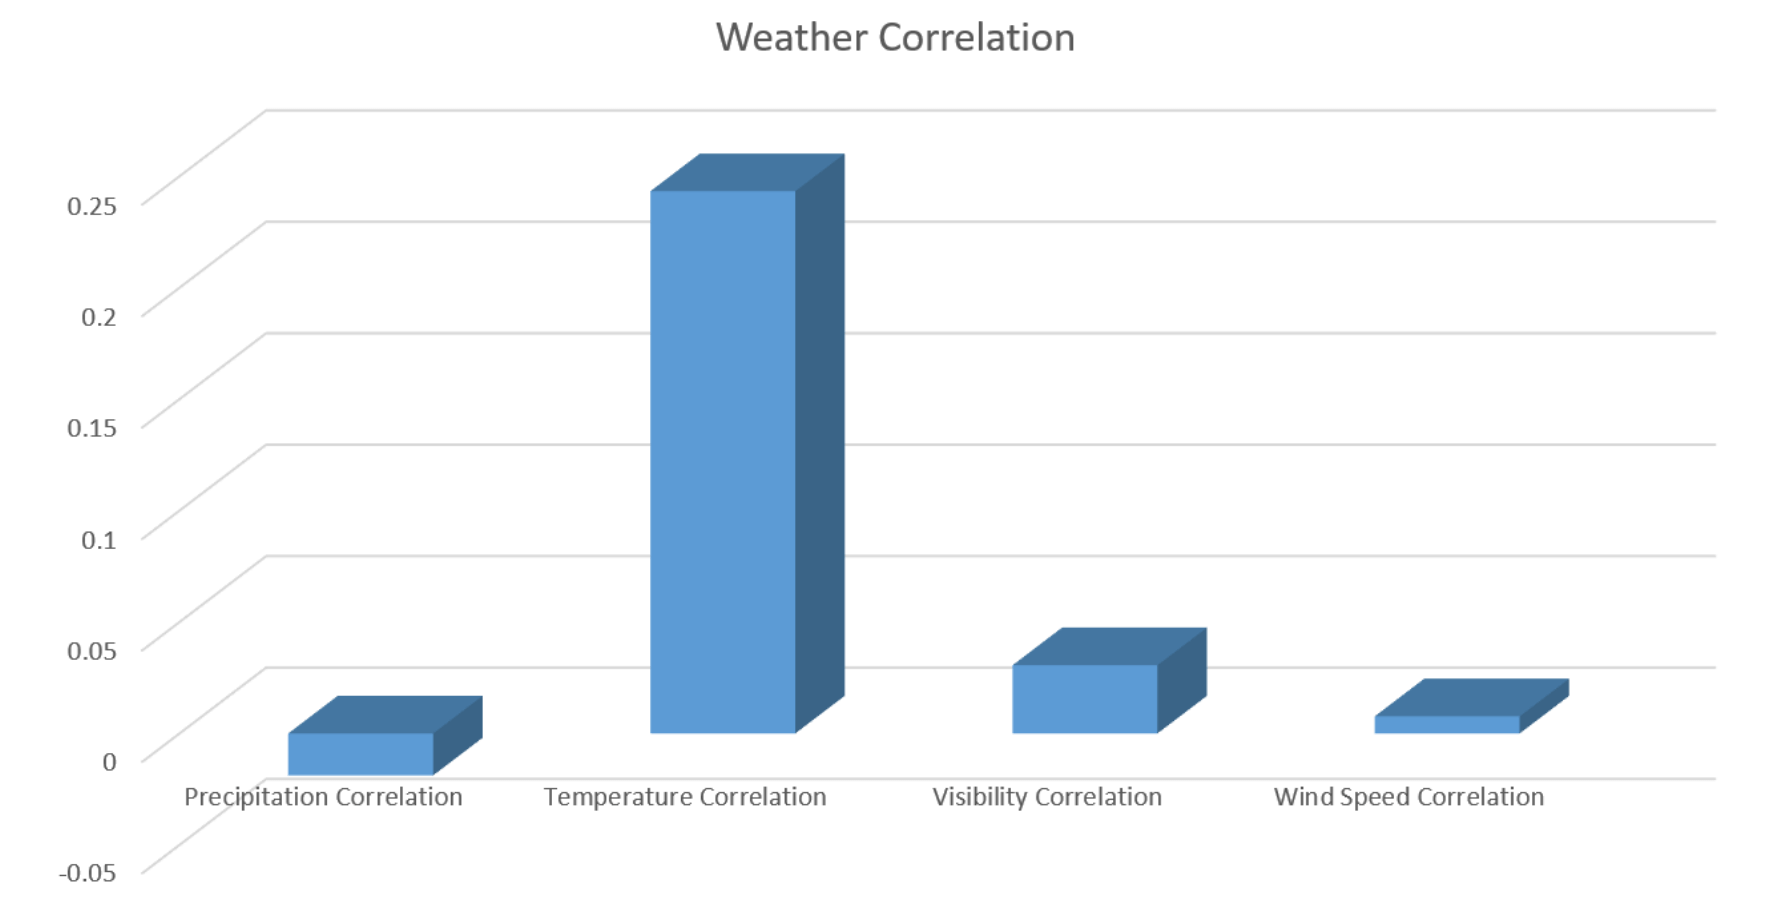 Excel's mathematical view of the weather correlations